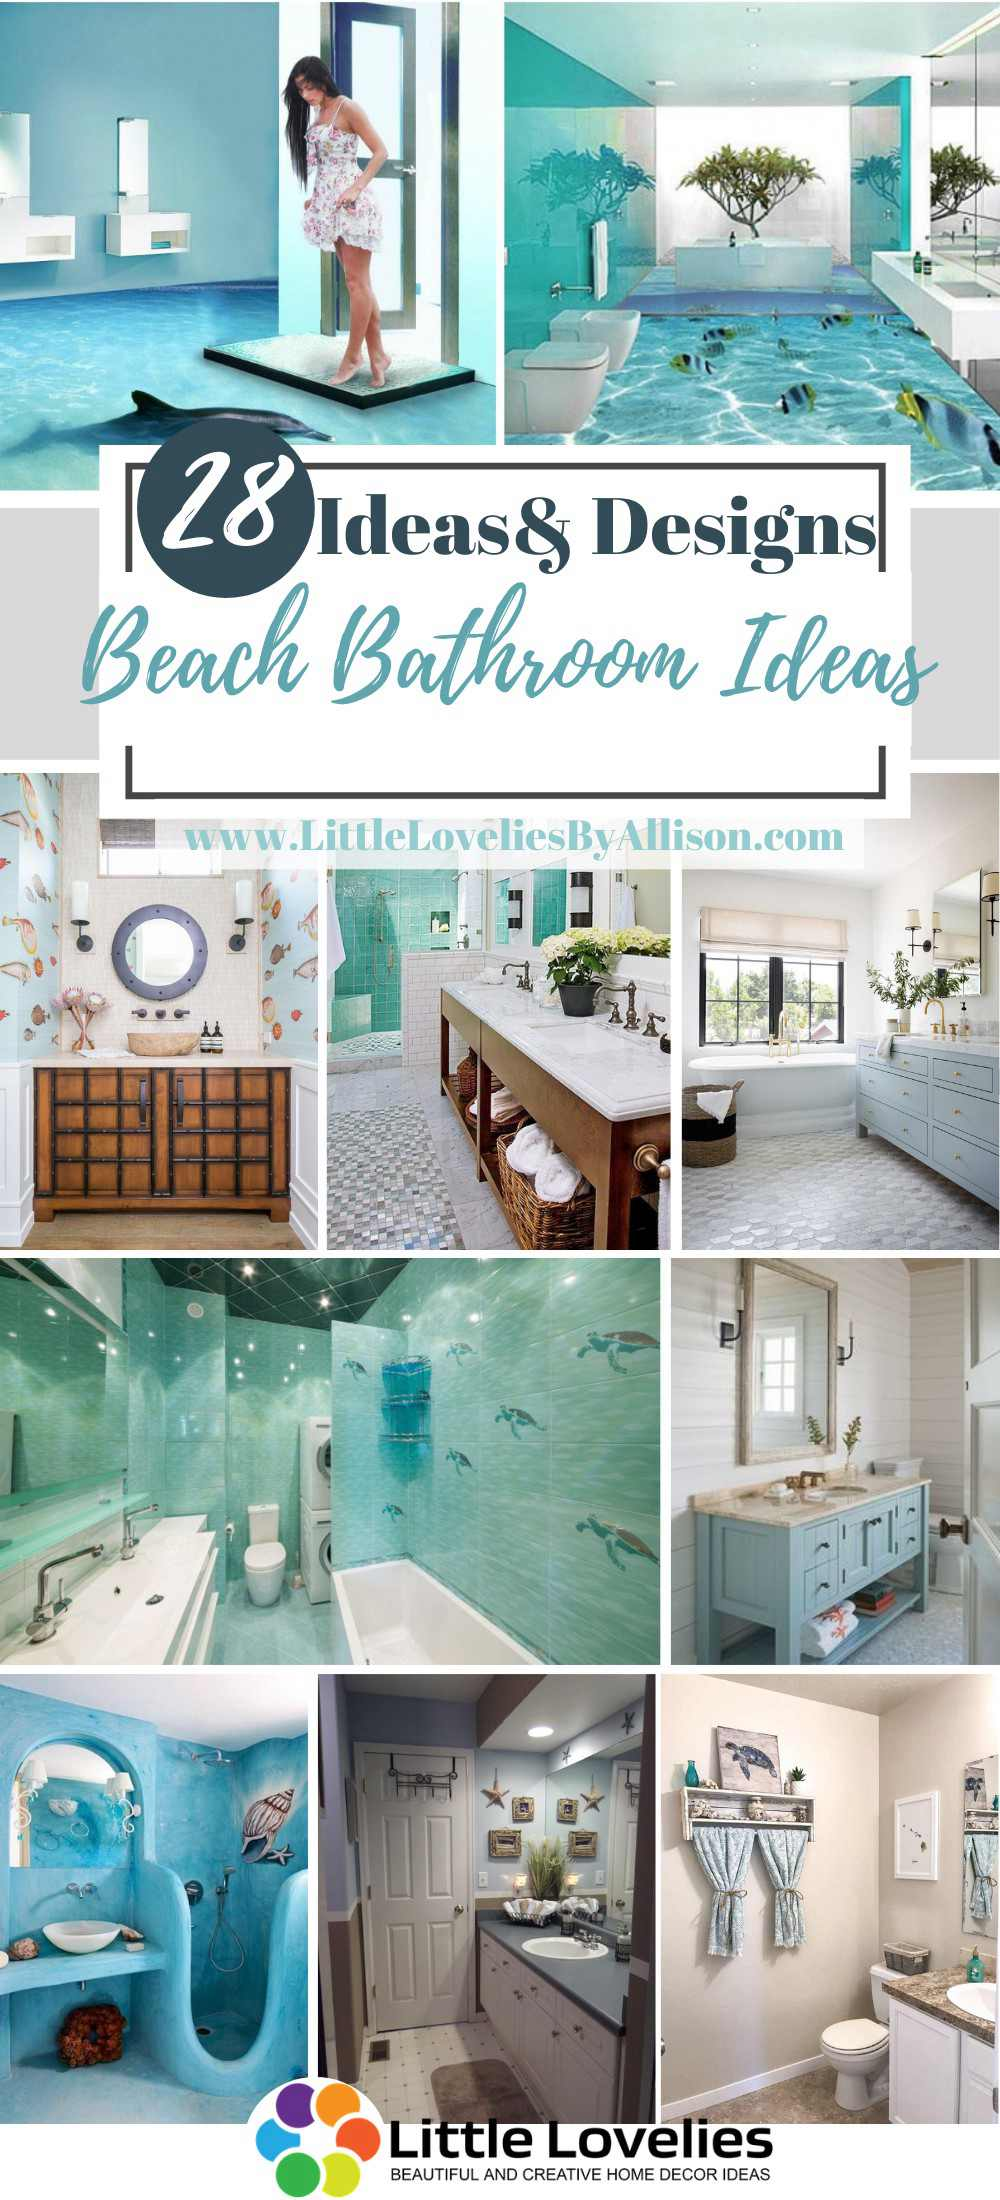 Best Beach Bathroom Ideas